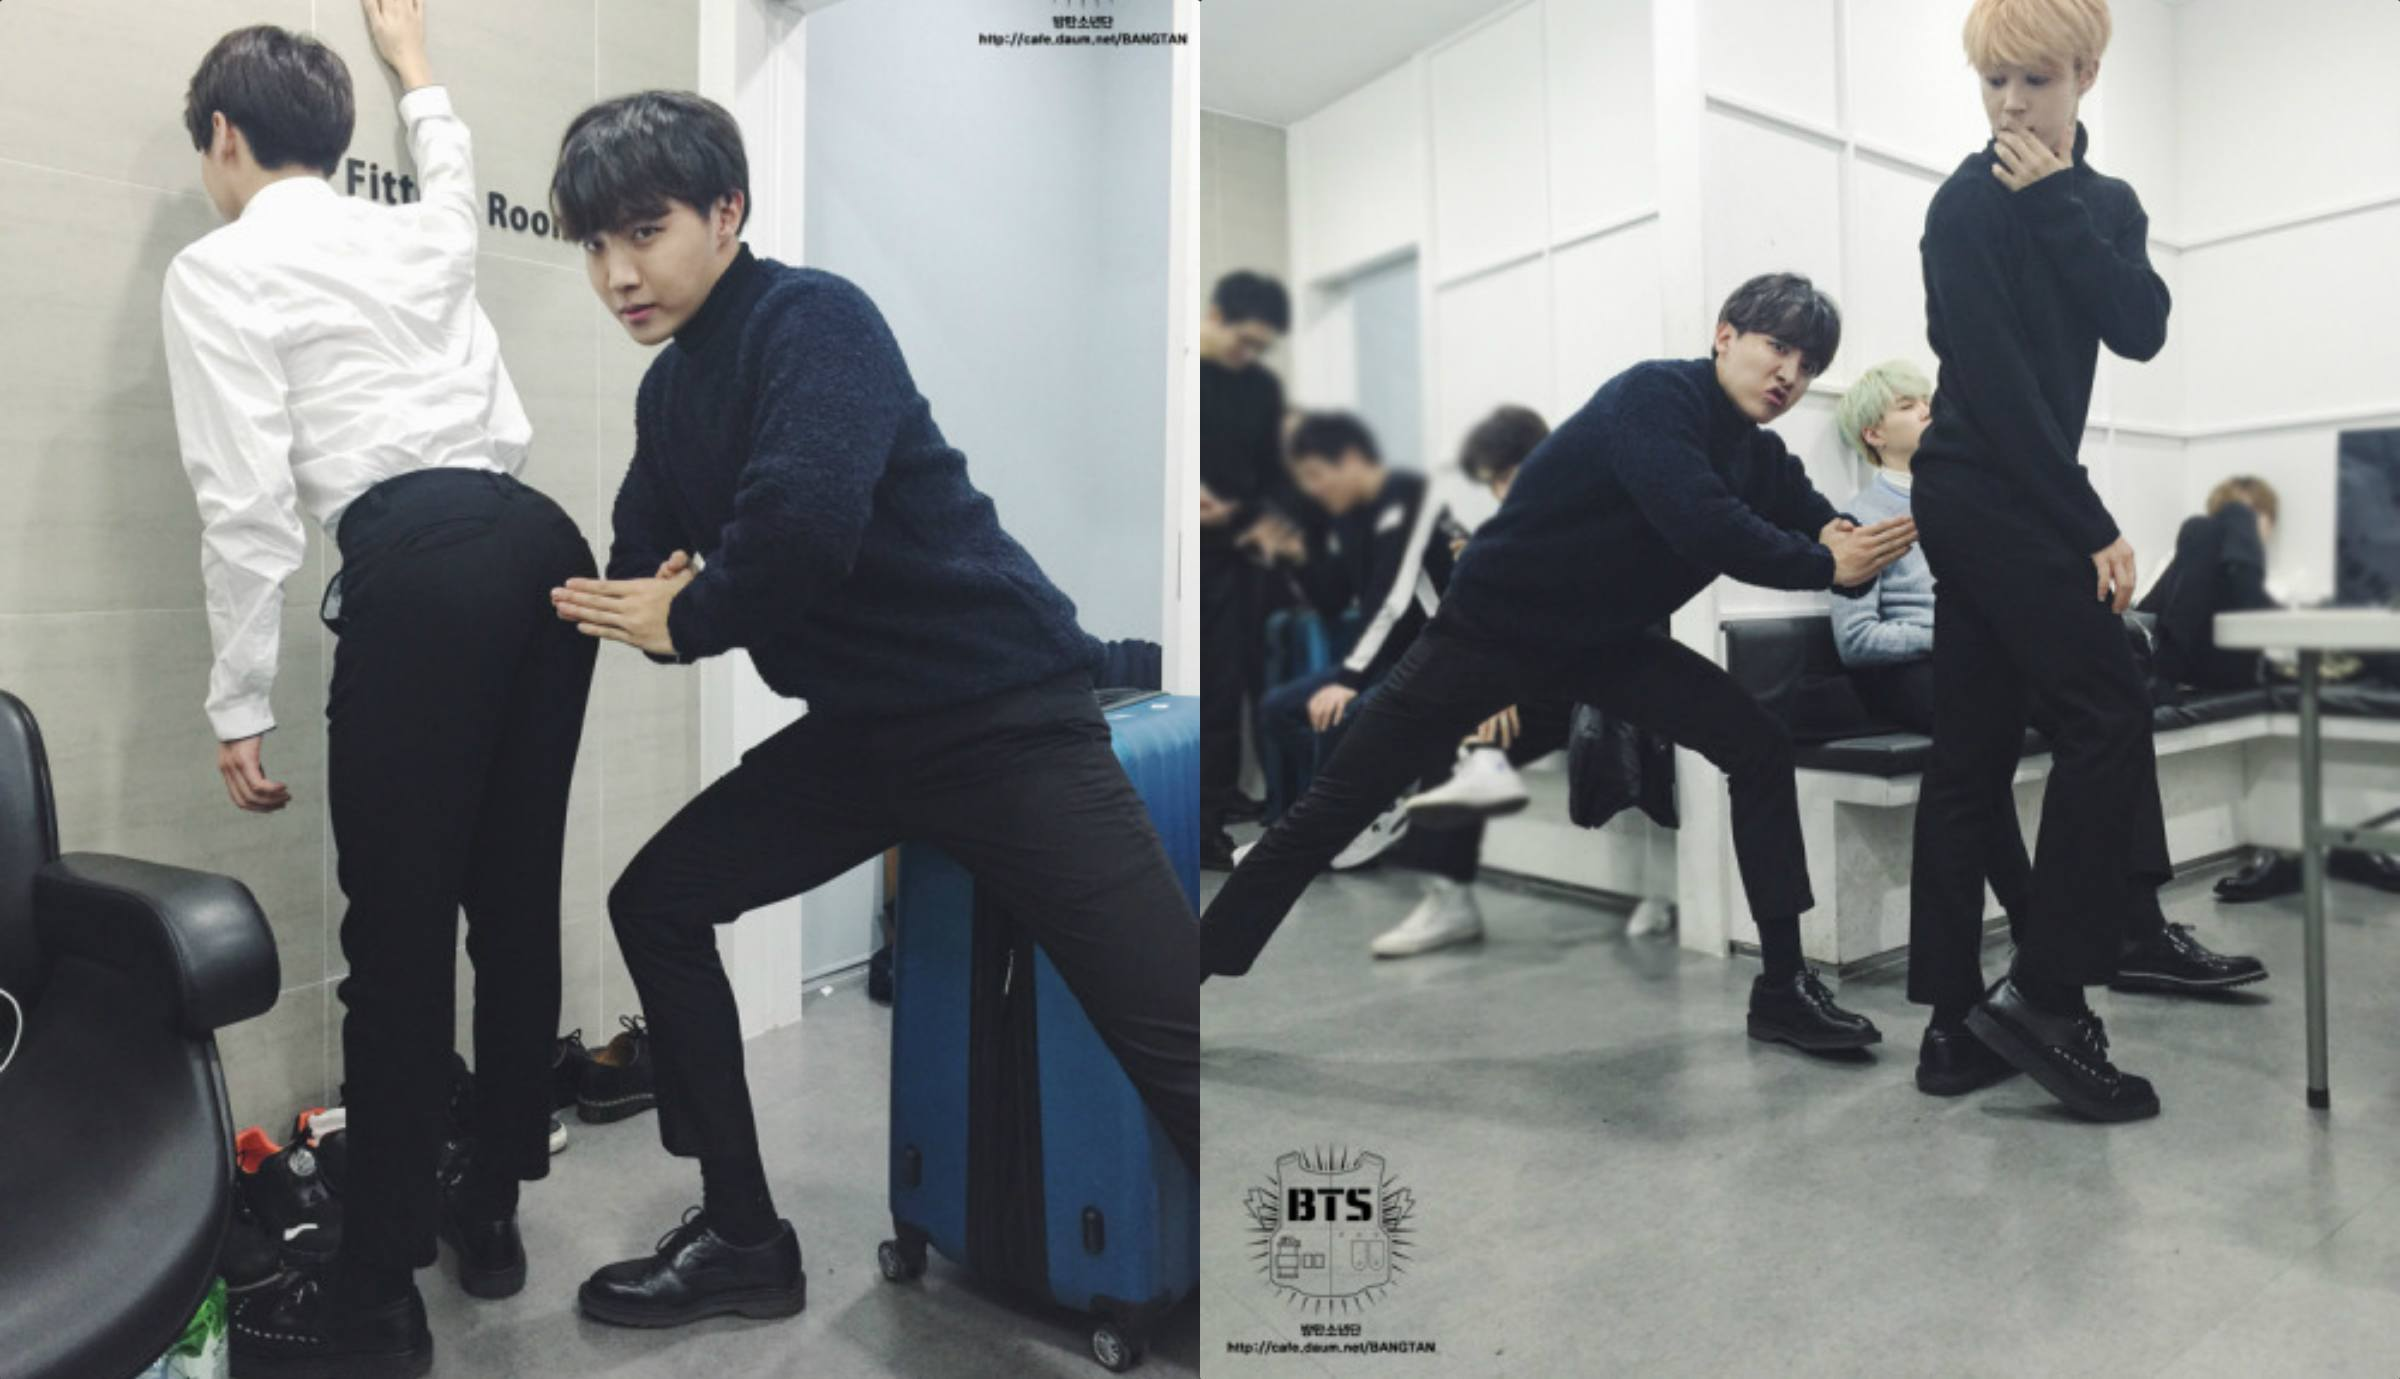 Girls Fingering Each Others Ass with international fans confusedphotos of bts members poking each